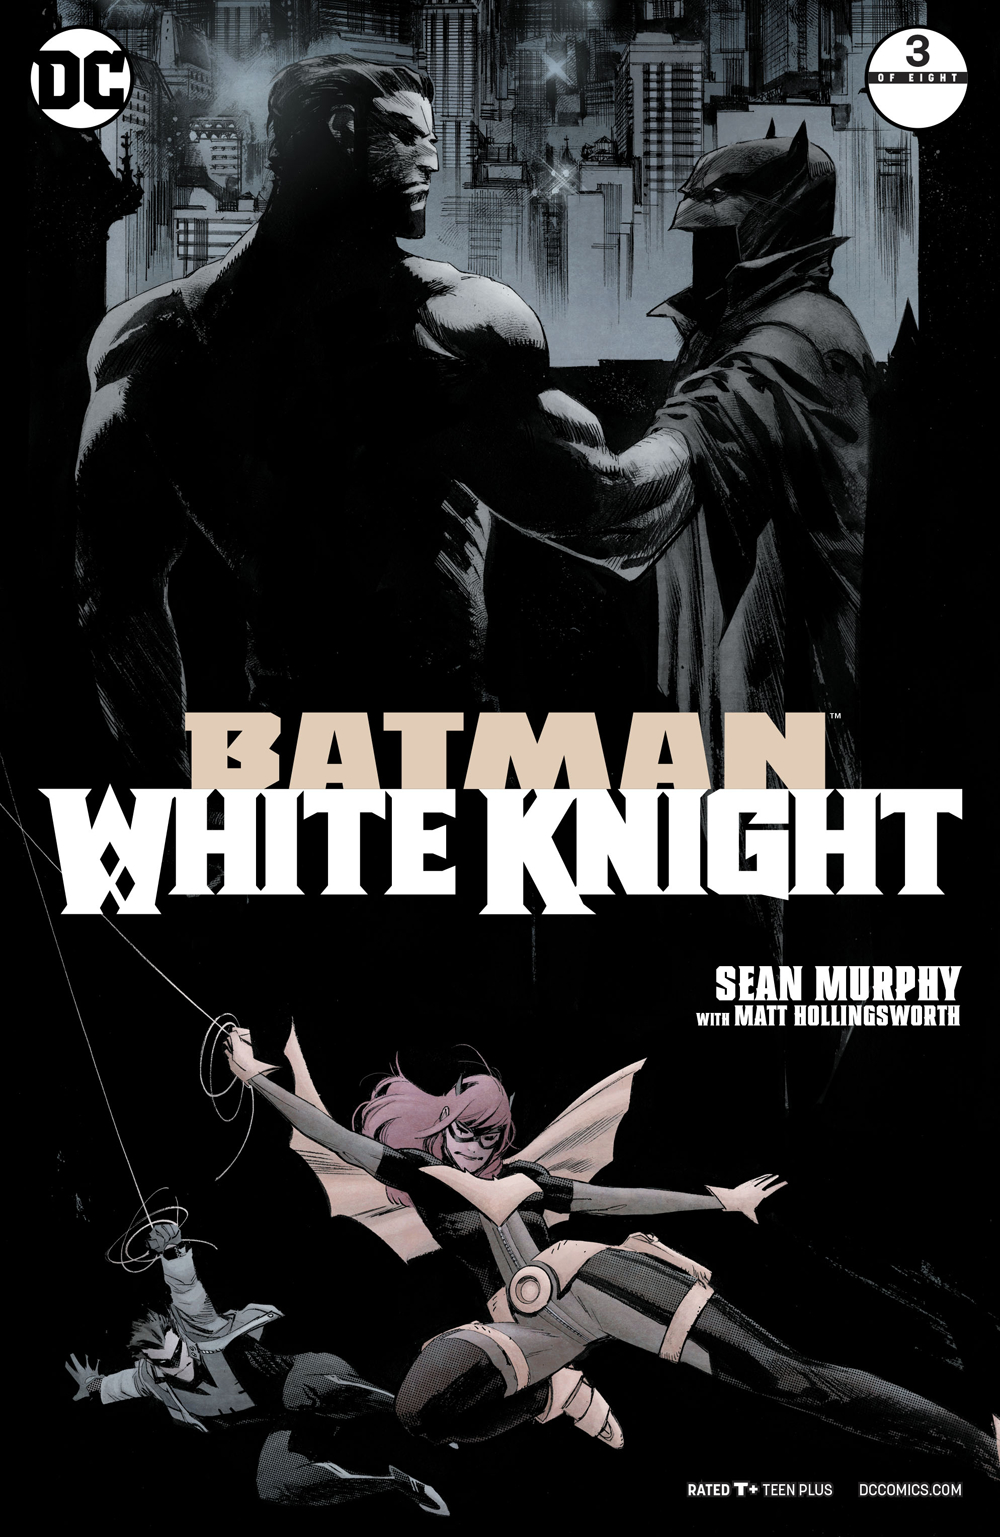 BATMAN WHITE KNIGHT #3 (OF 8)